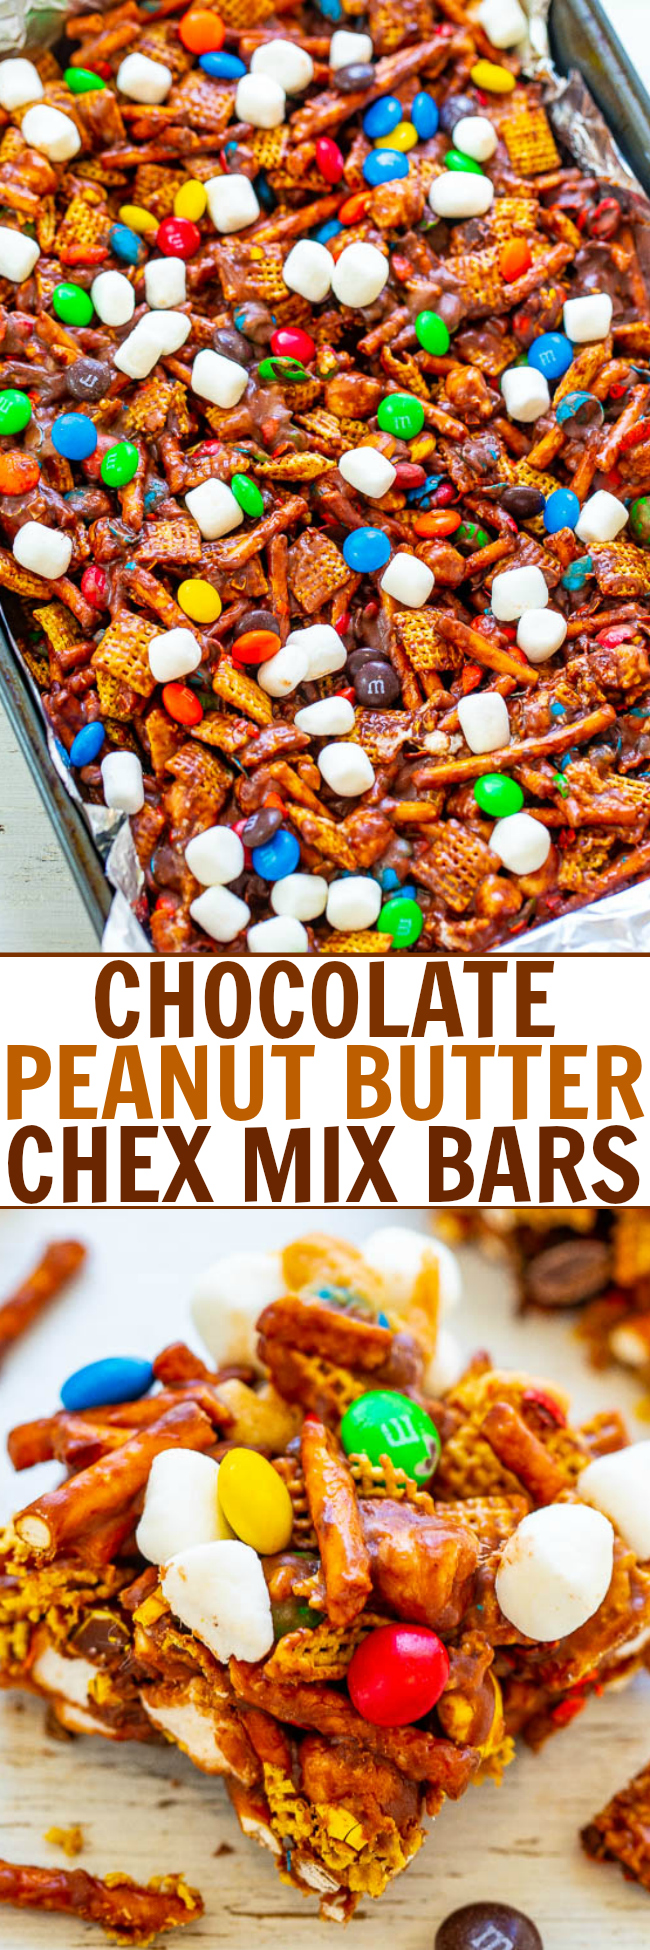 Chocolate Peanut Butter Chex Bars — SO EASY, NO-BAKE, and ready in FIVE minutes!! Chex cereal, pretzels, and M&Ms glued together with peanut butter and marshmallows!! An IRRESISTIBLE salty-sweet combination!!